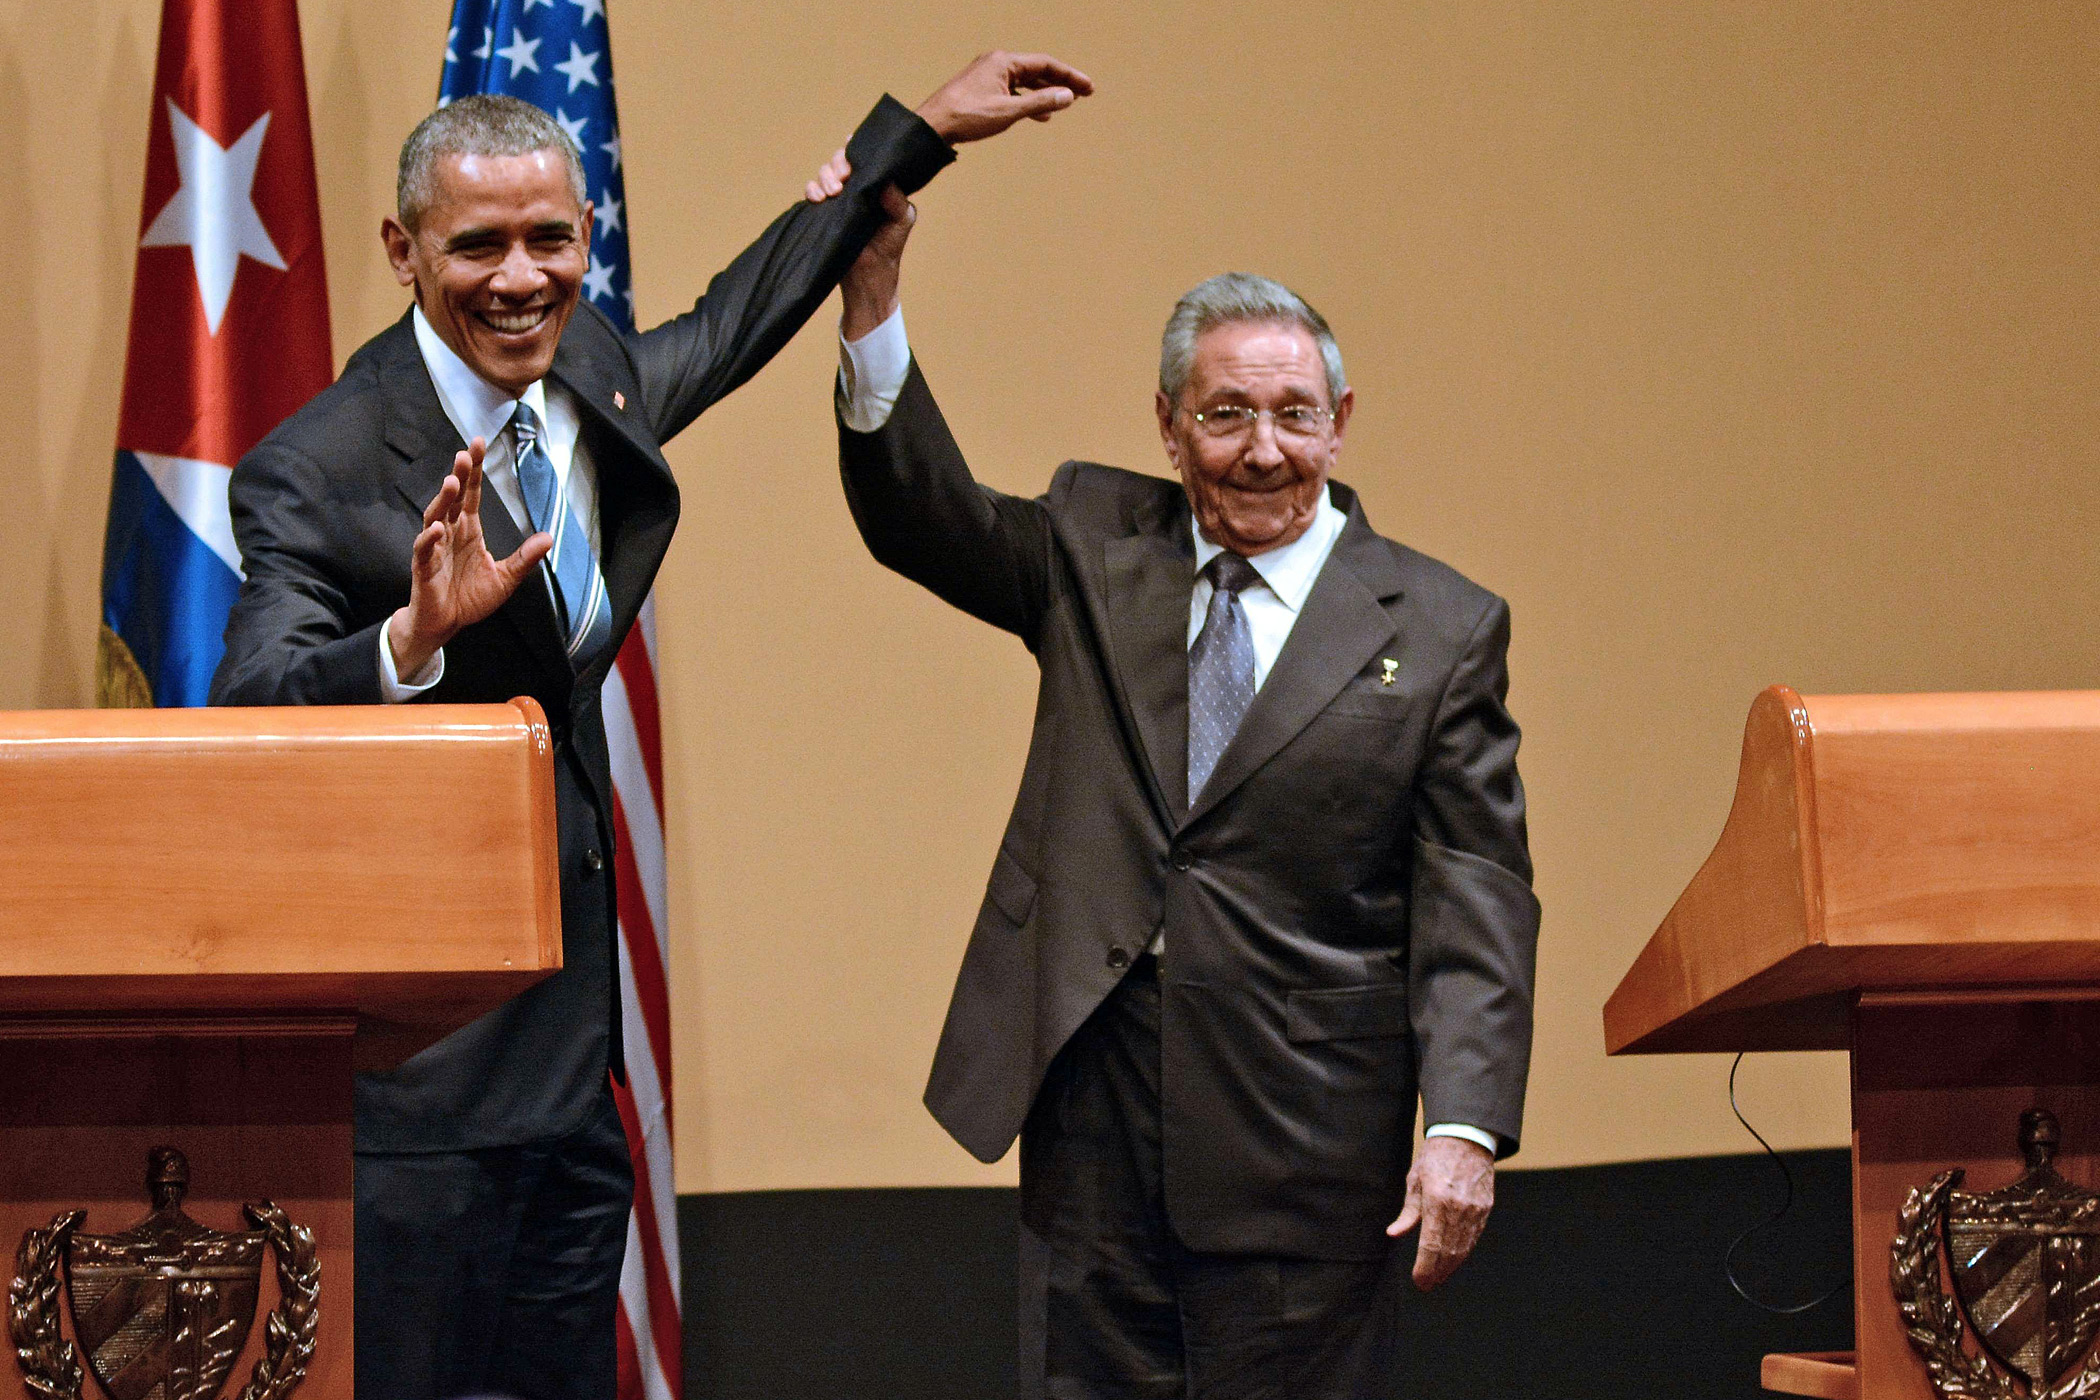 Cuban President Raul Castro, right, raises the hand of U.S. President Barack Obama during a joint press conference at the Revolution Palace in Havana on March 21, 2016.